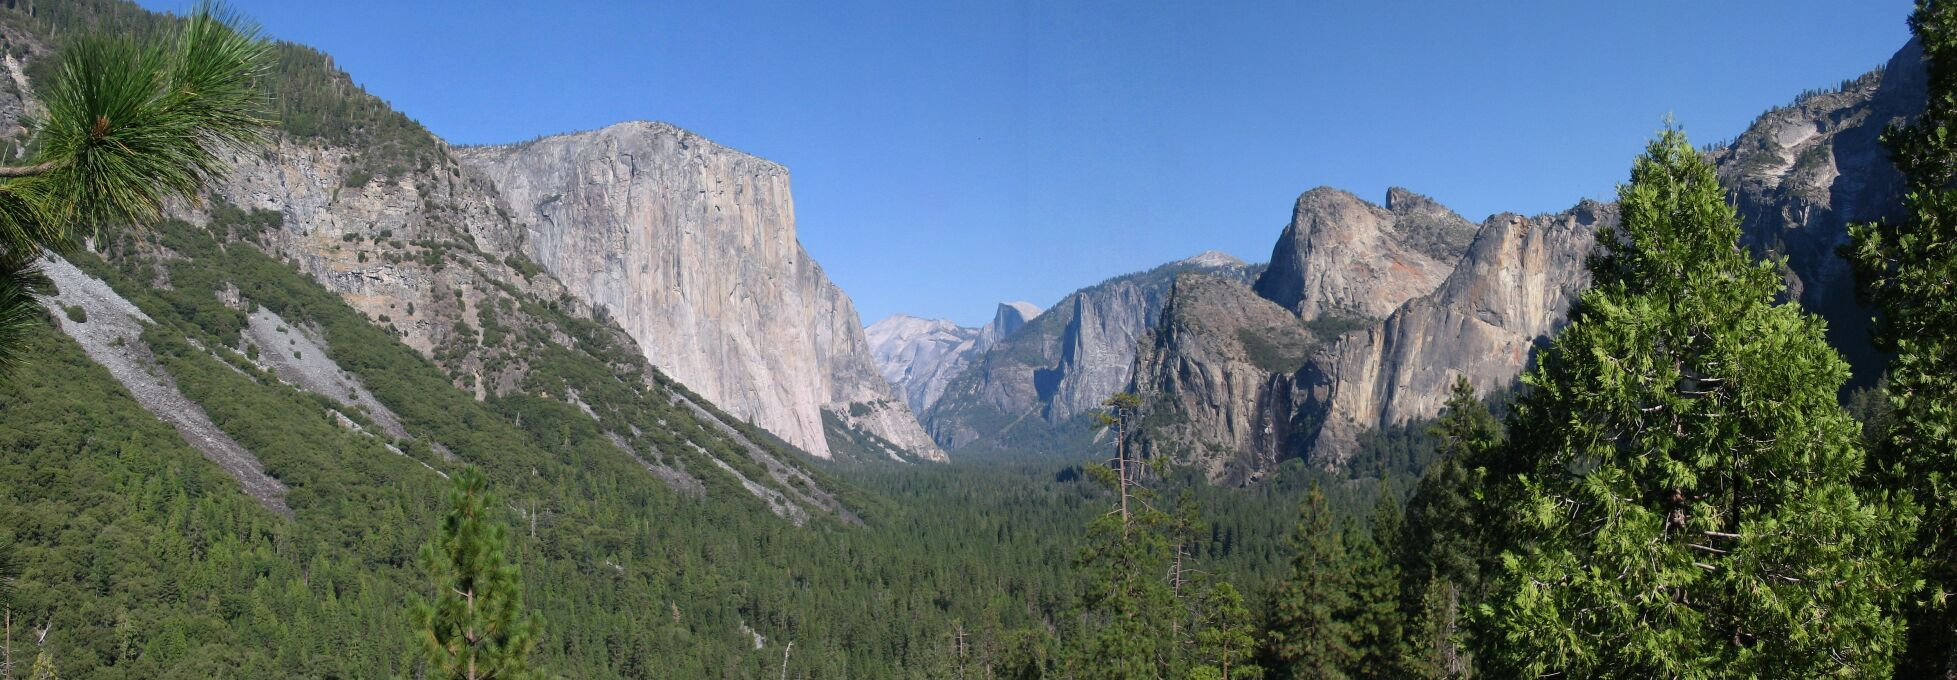 Yosemite National Park. Never been. Always wanted to go.